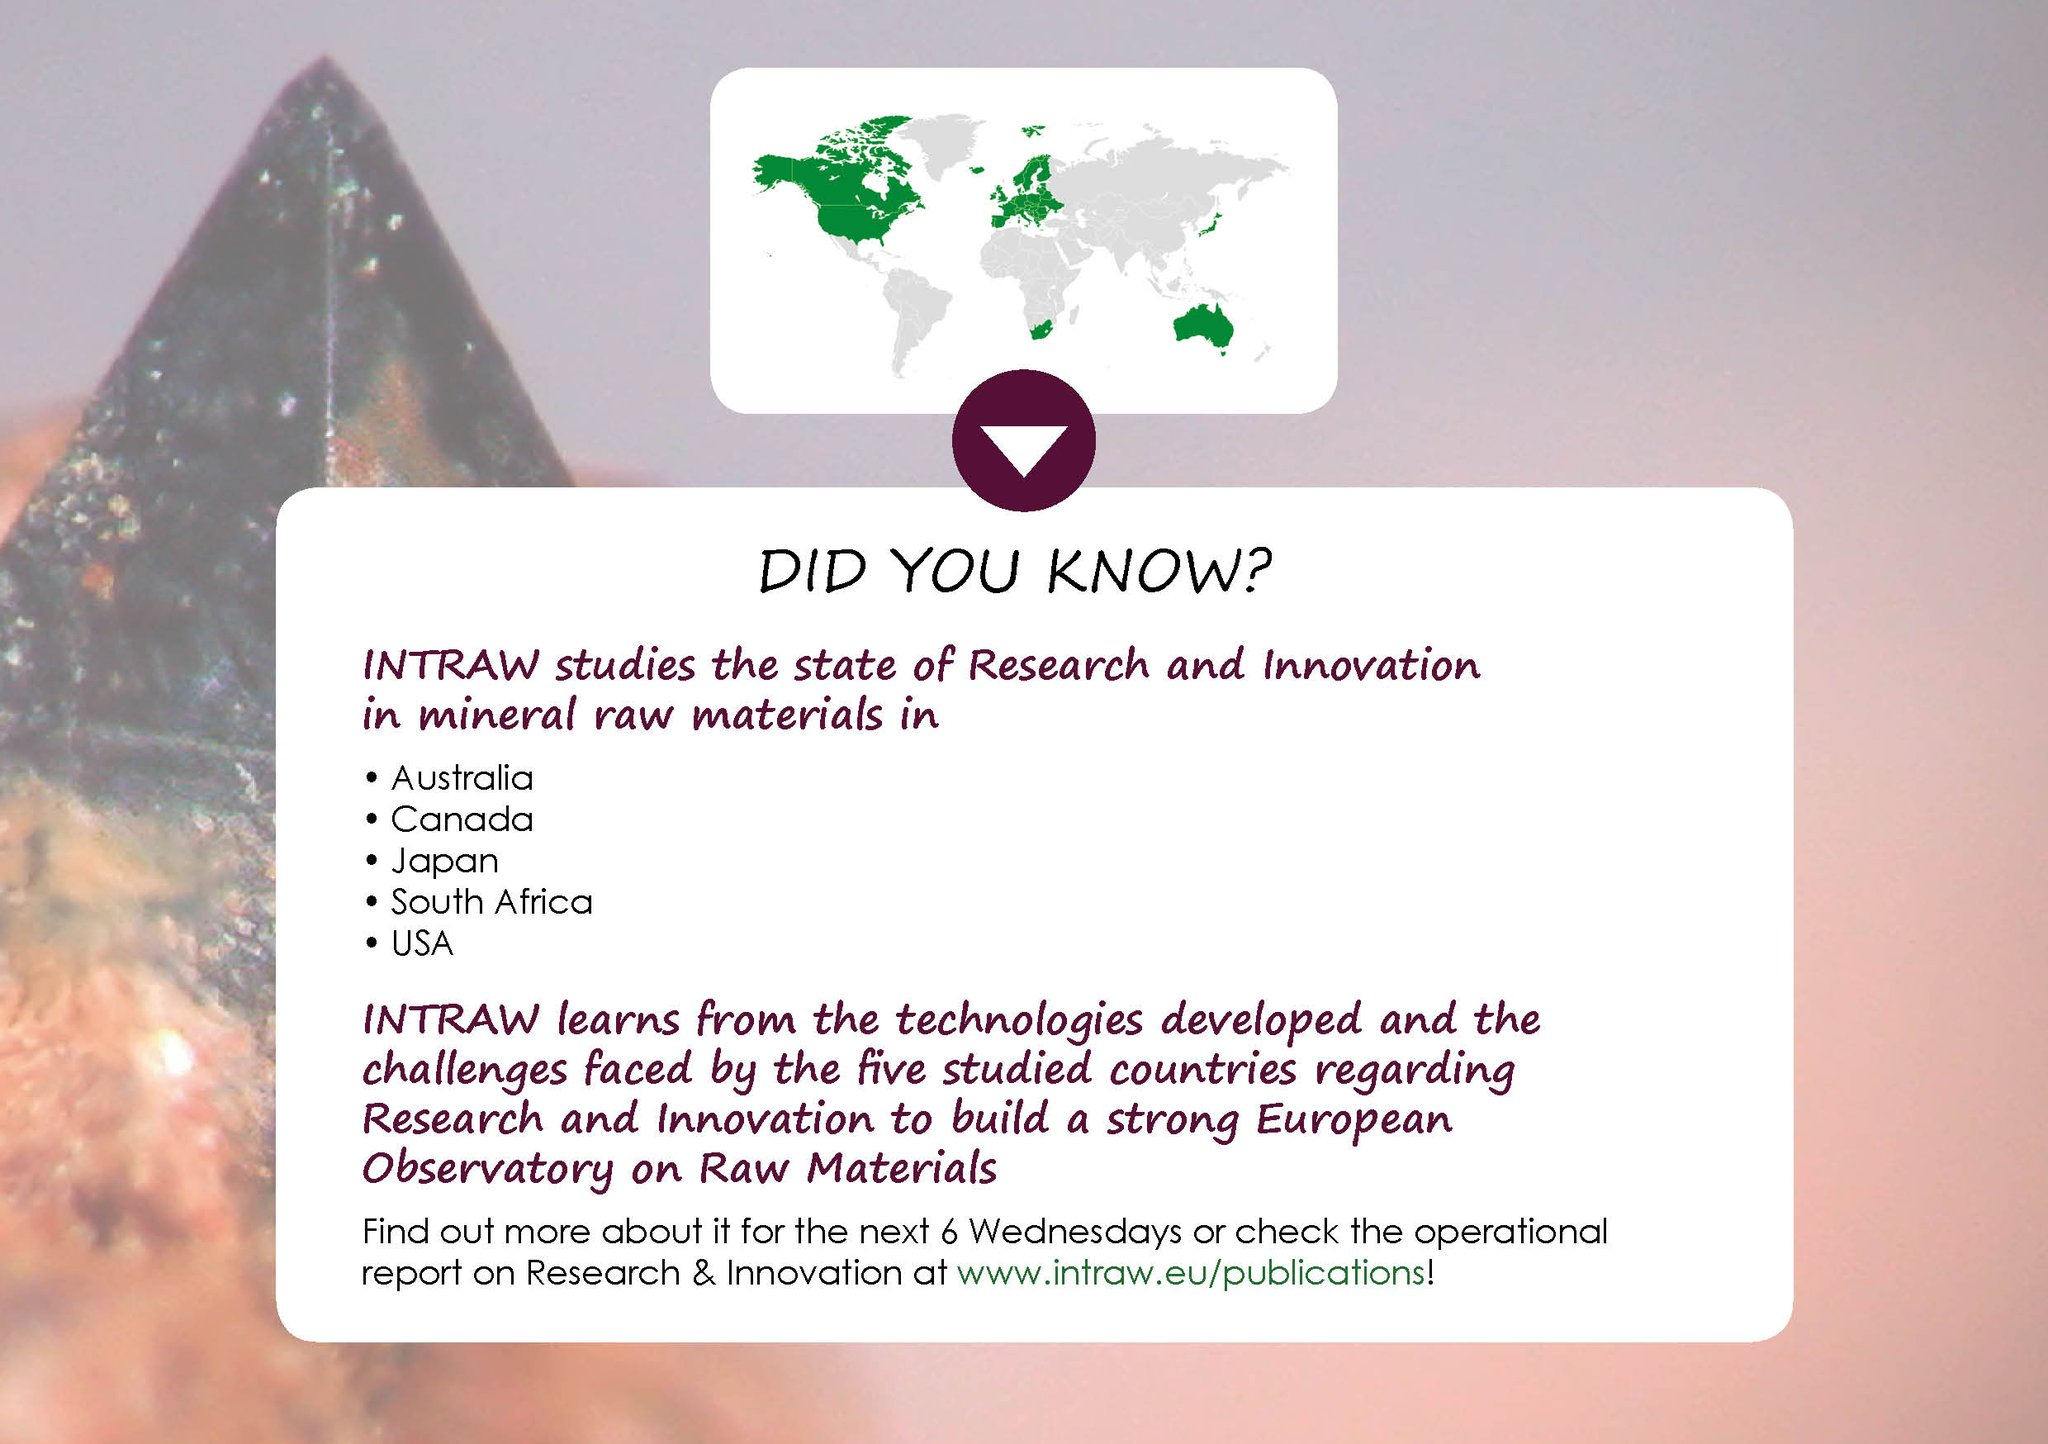 More information on our second topic #ResearchAndInnovation